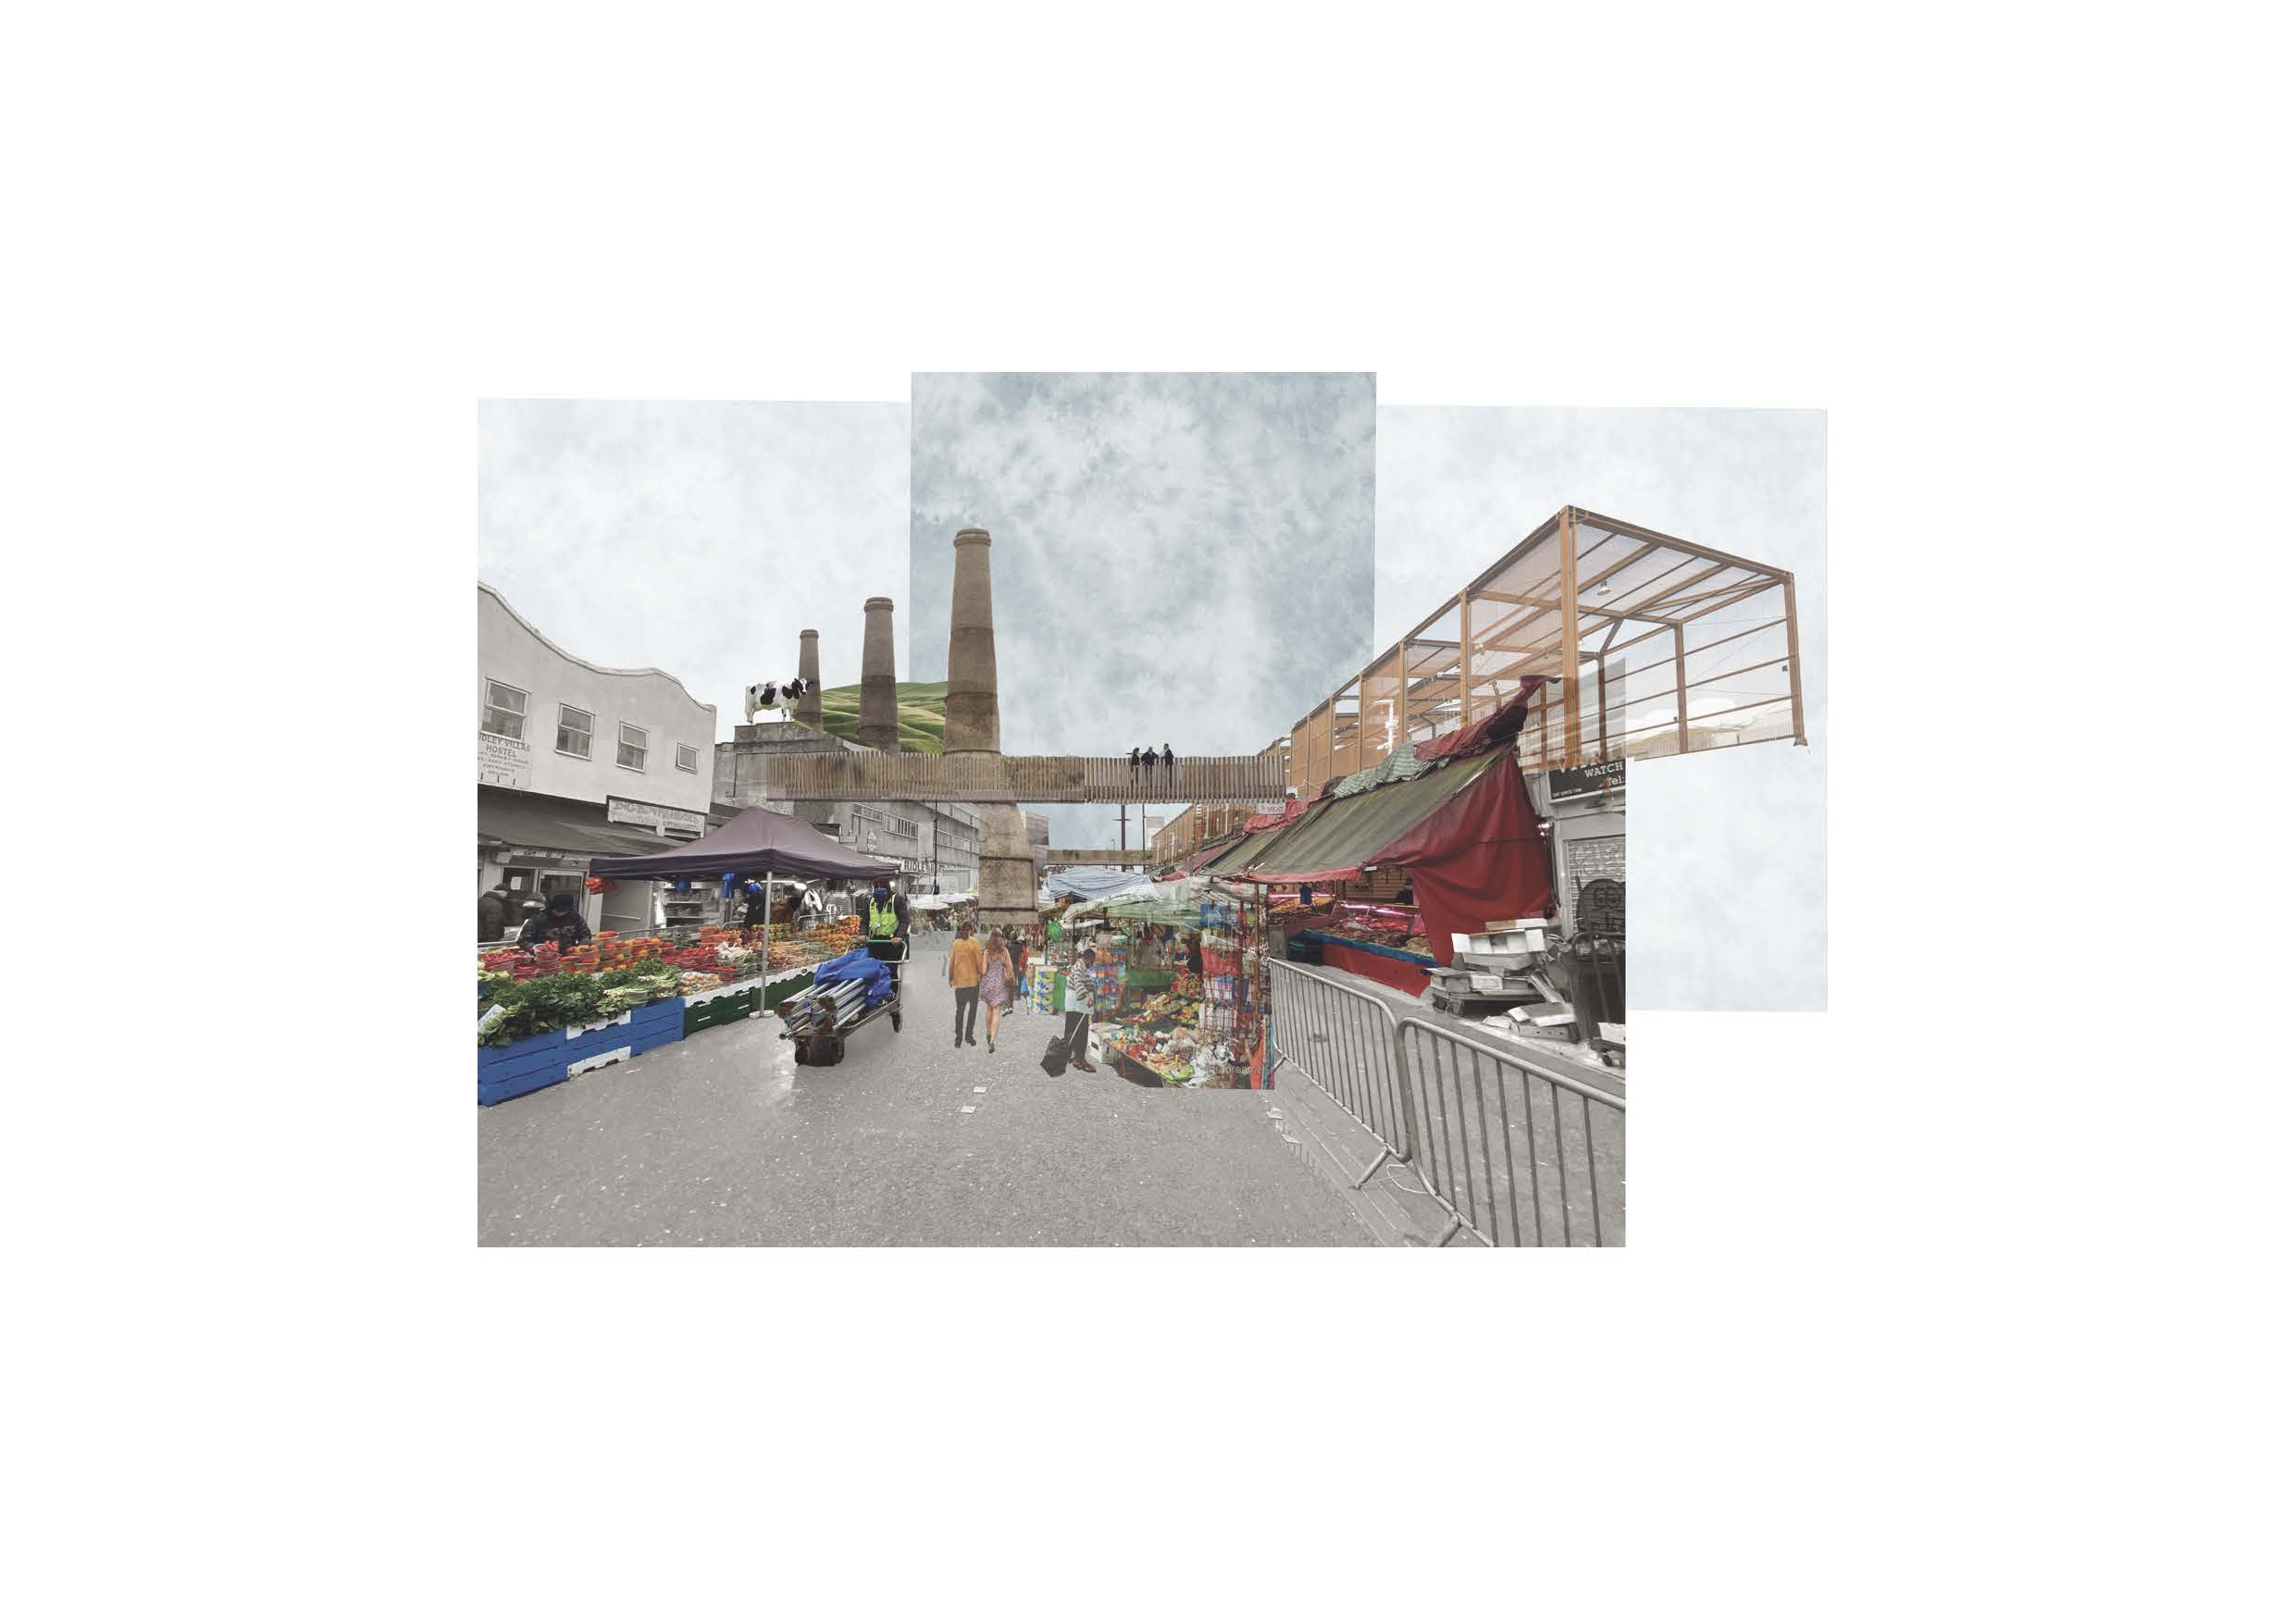 Conceptual Collage: Embedding the phased meat innovation center into Ridley Road Market